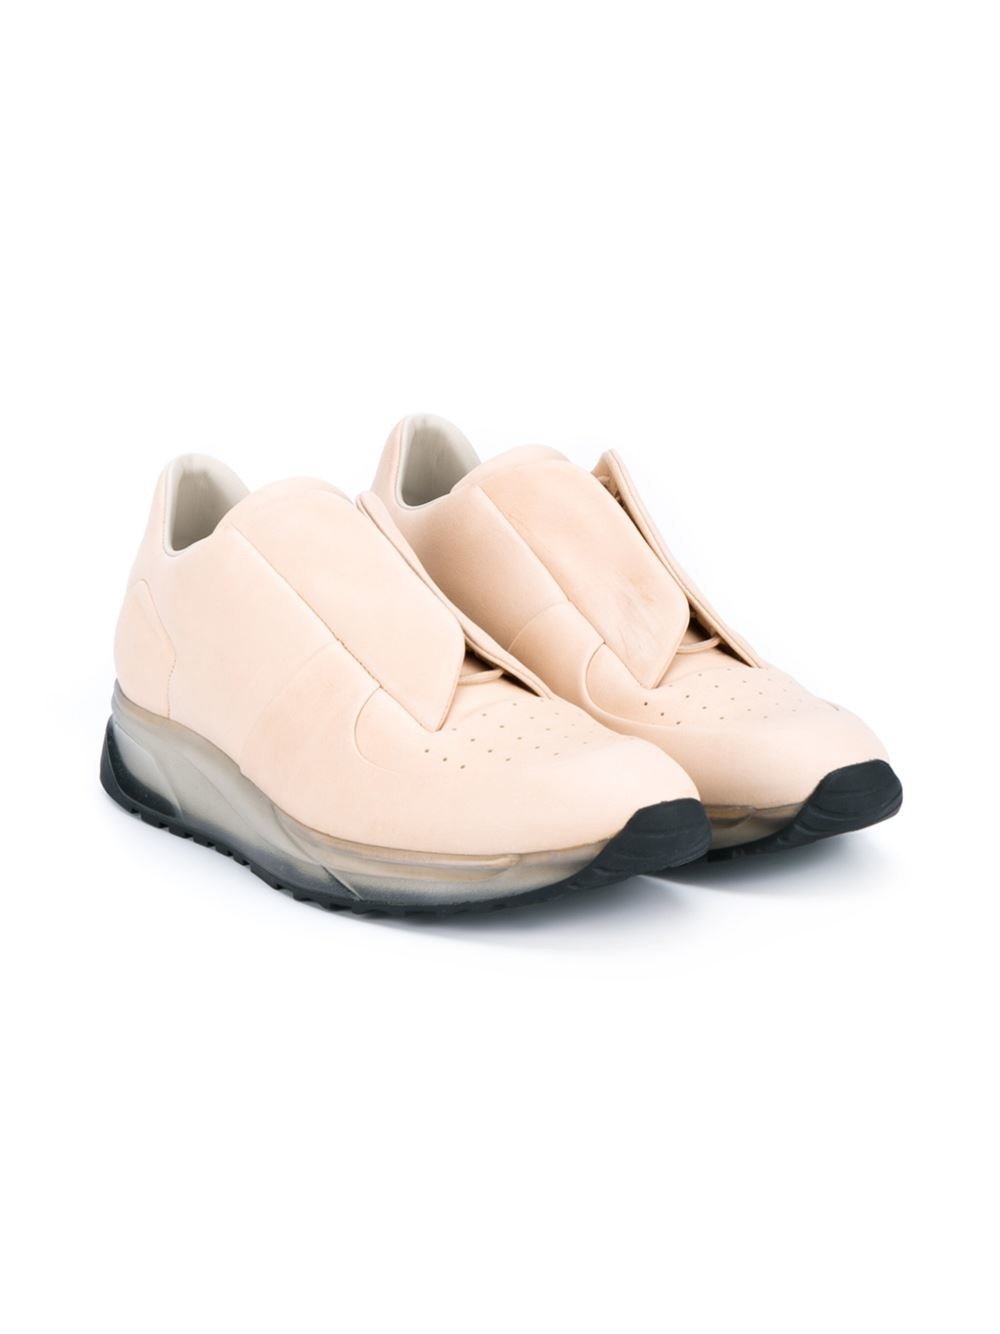 Maison Margiela Leather Trasparent Concealed Vamp Sneakers in Natural